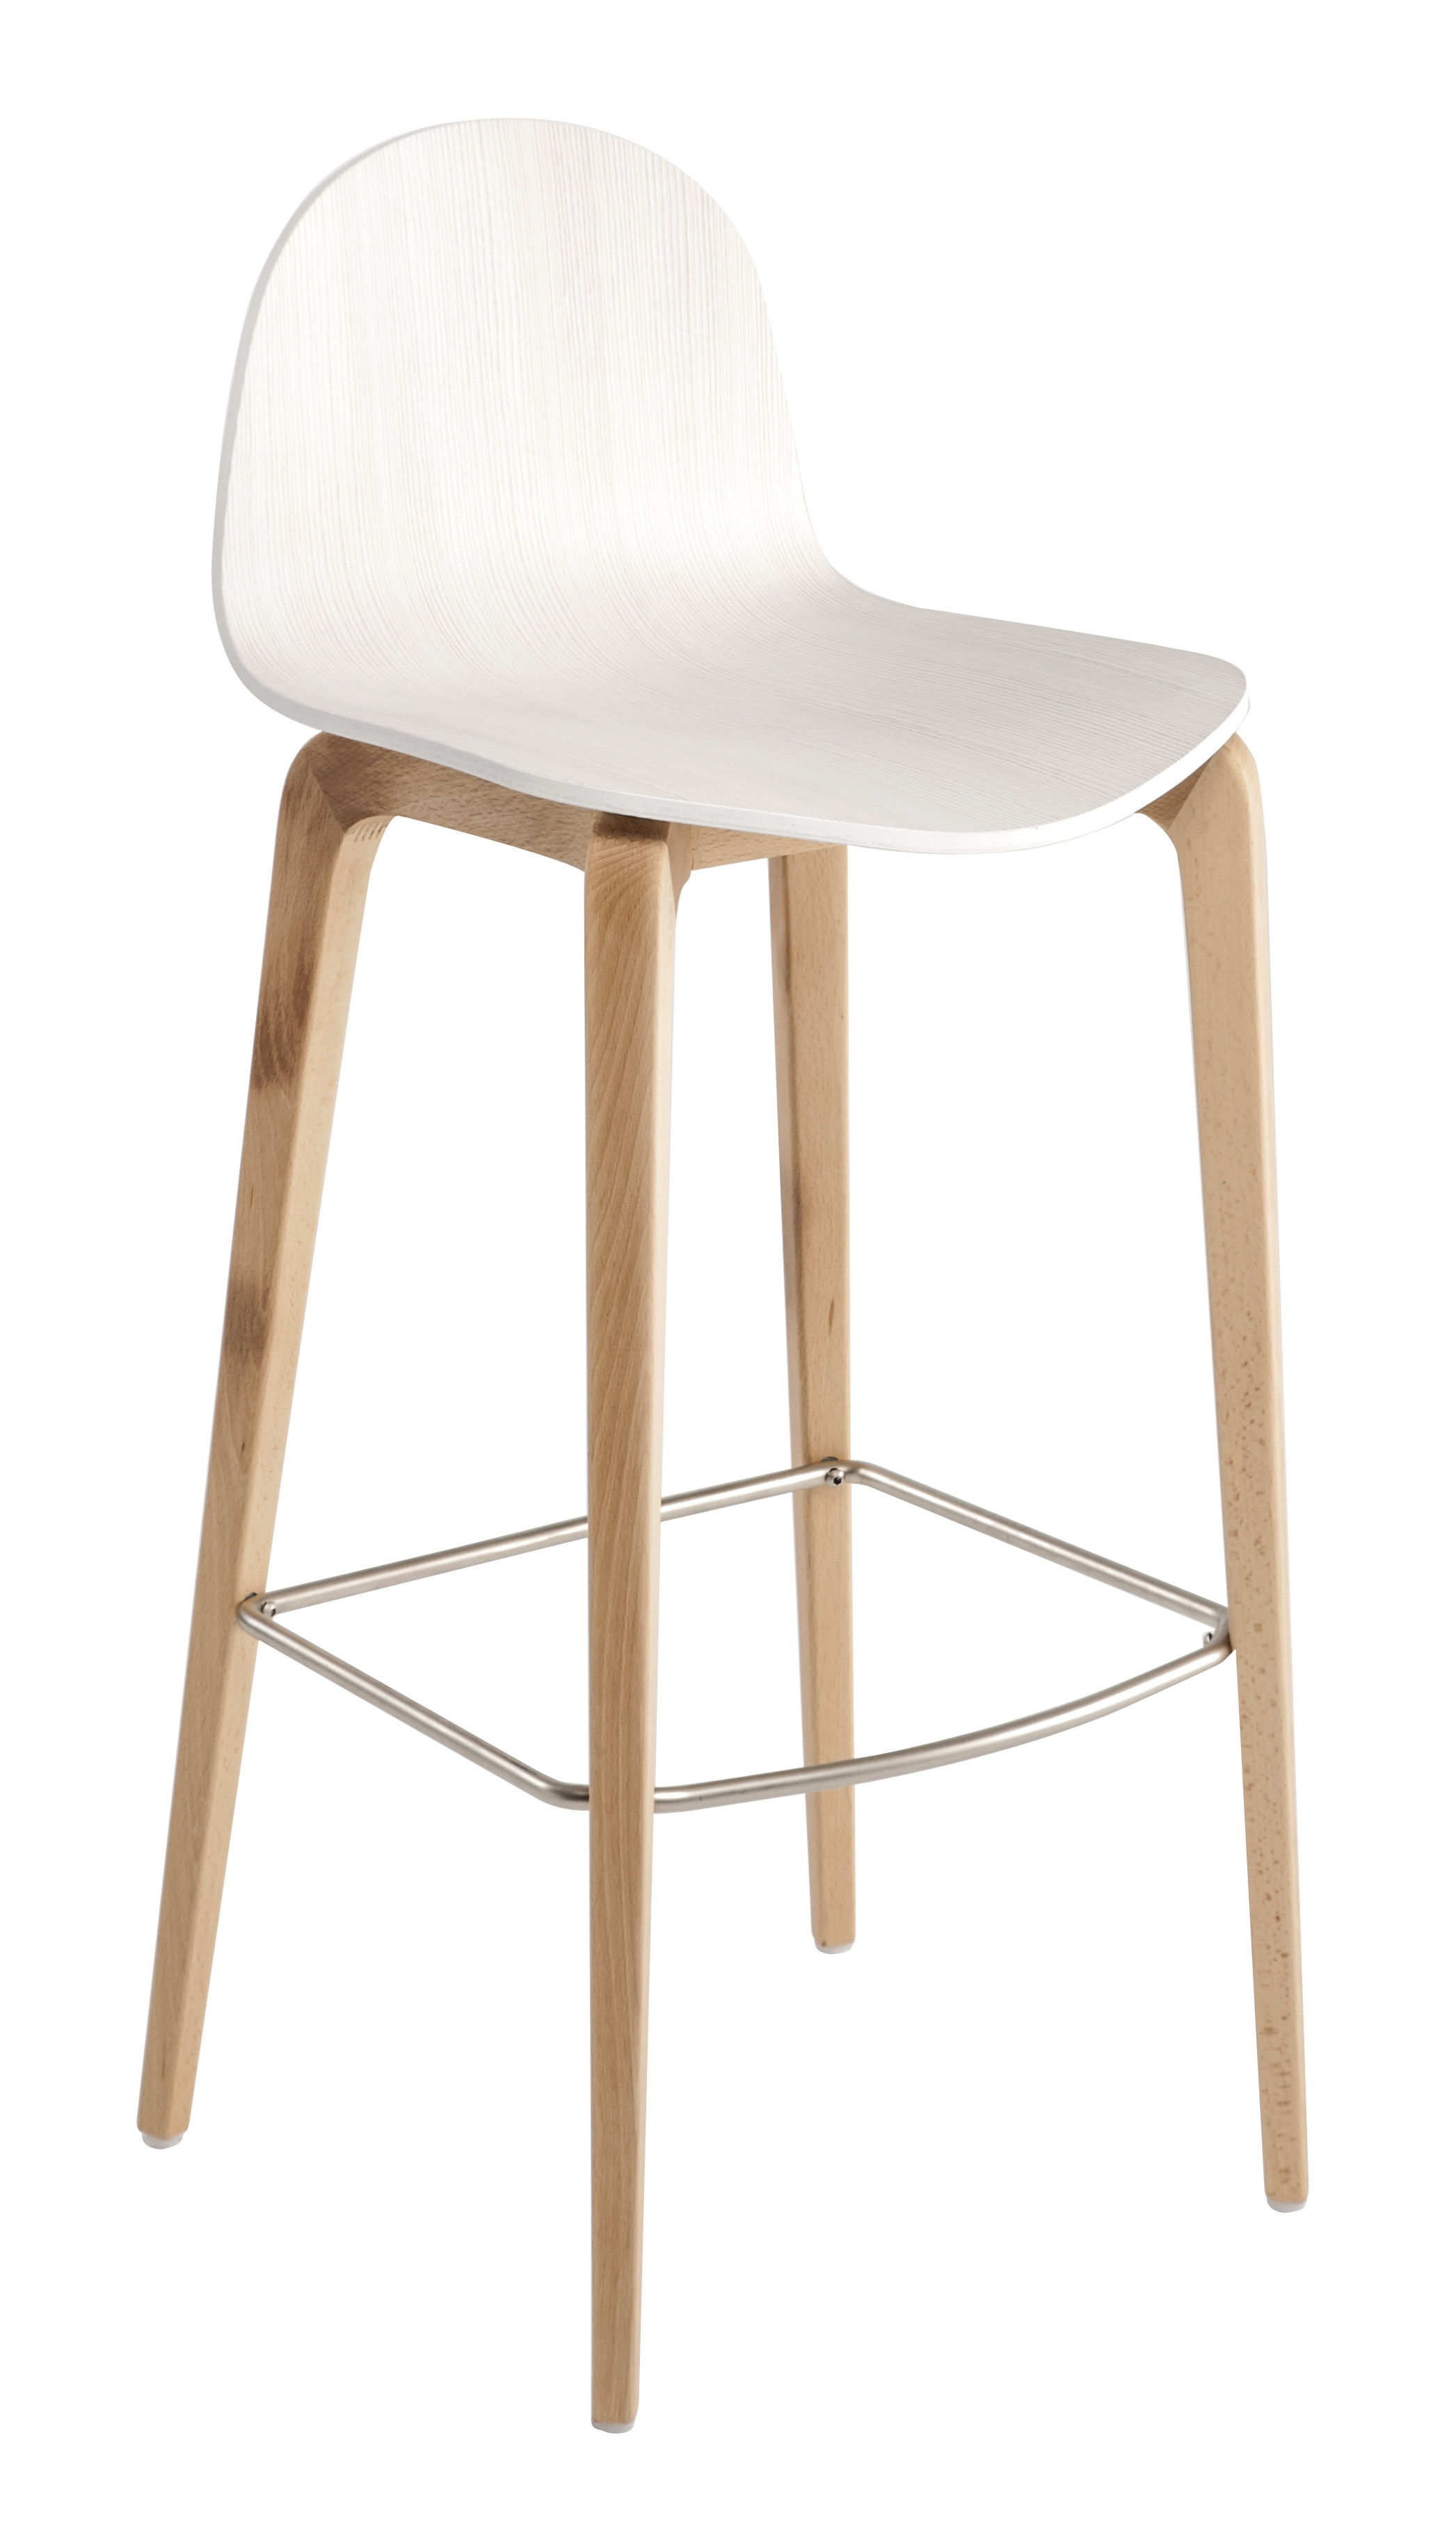 bob bar stool h 75 cm wood natural beech structure white shell by ondarreta. Black Bedroom Furniture Sets. Home Design Ideas